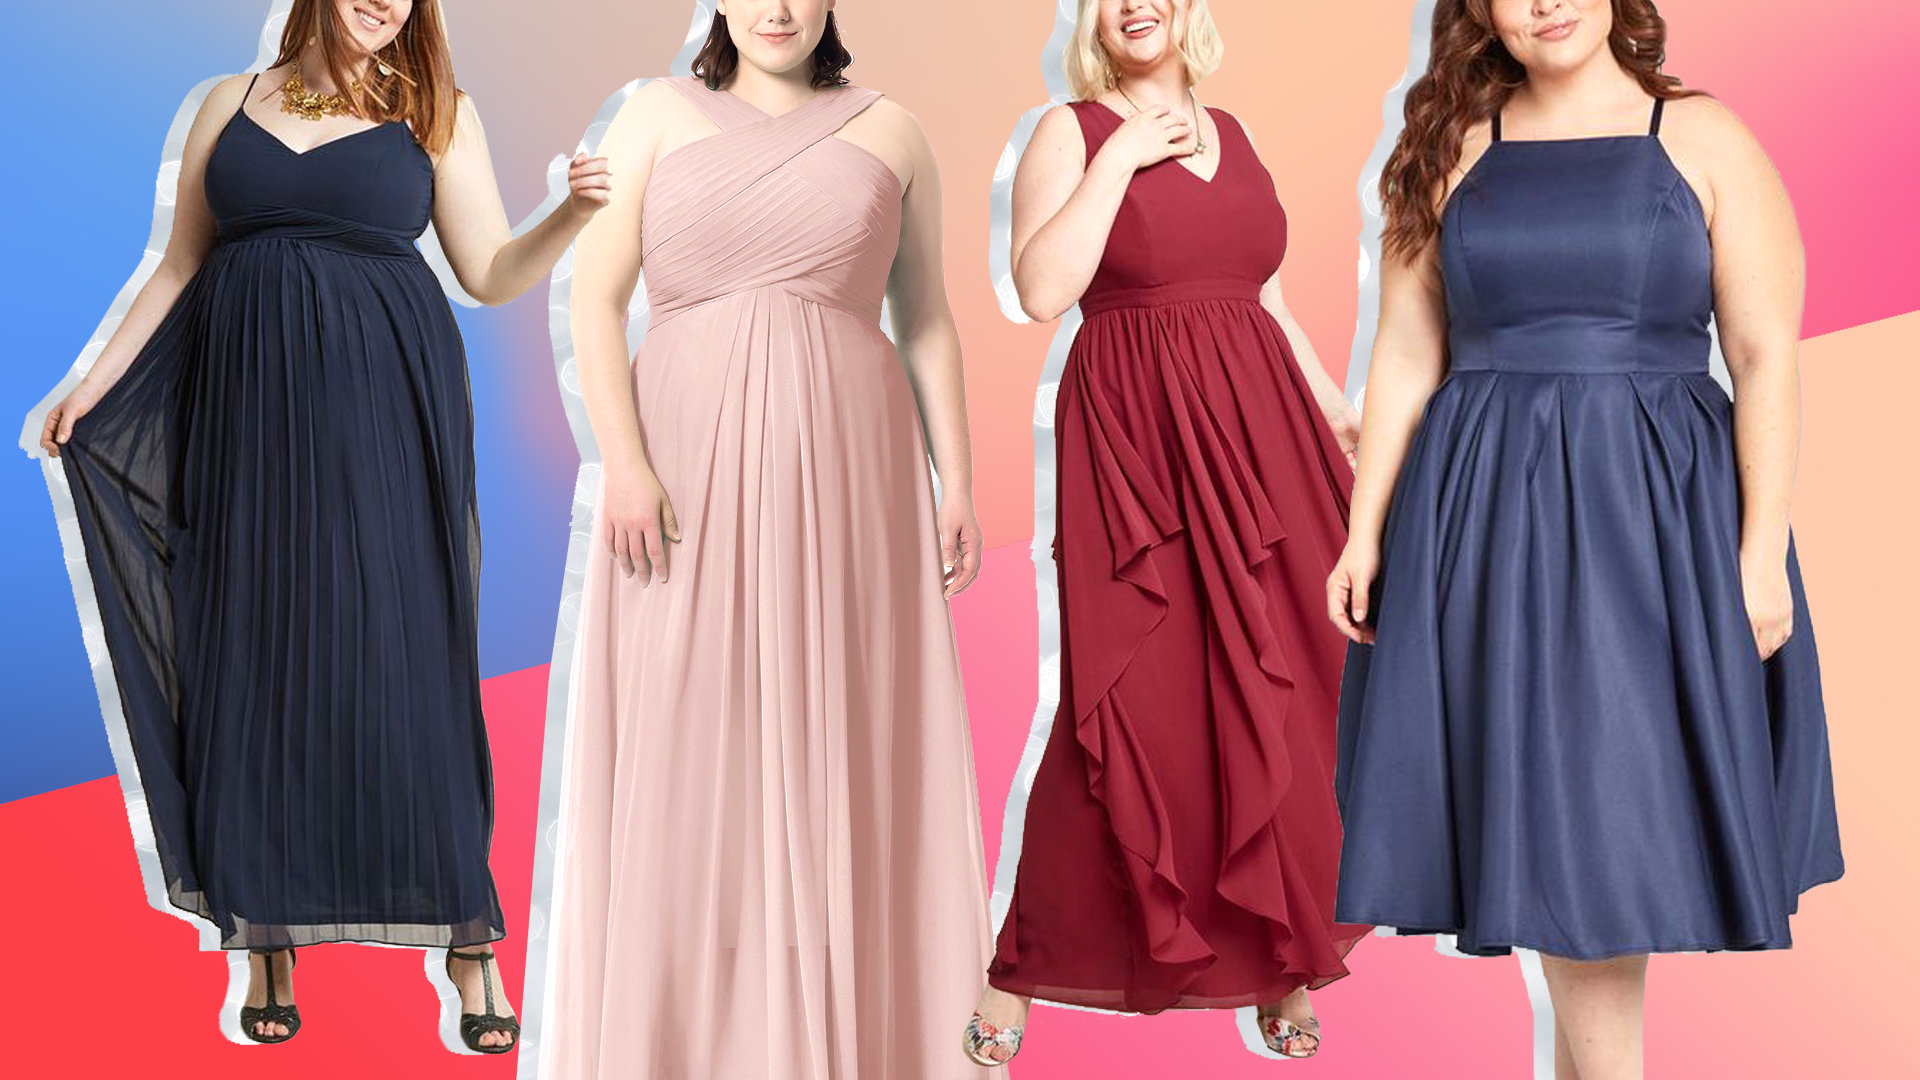 17 Plus-Size Bridesmaid Dresses That Will Make You Look (Almost) As Hot as the Bride